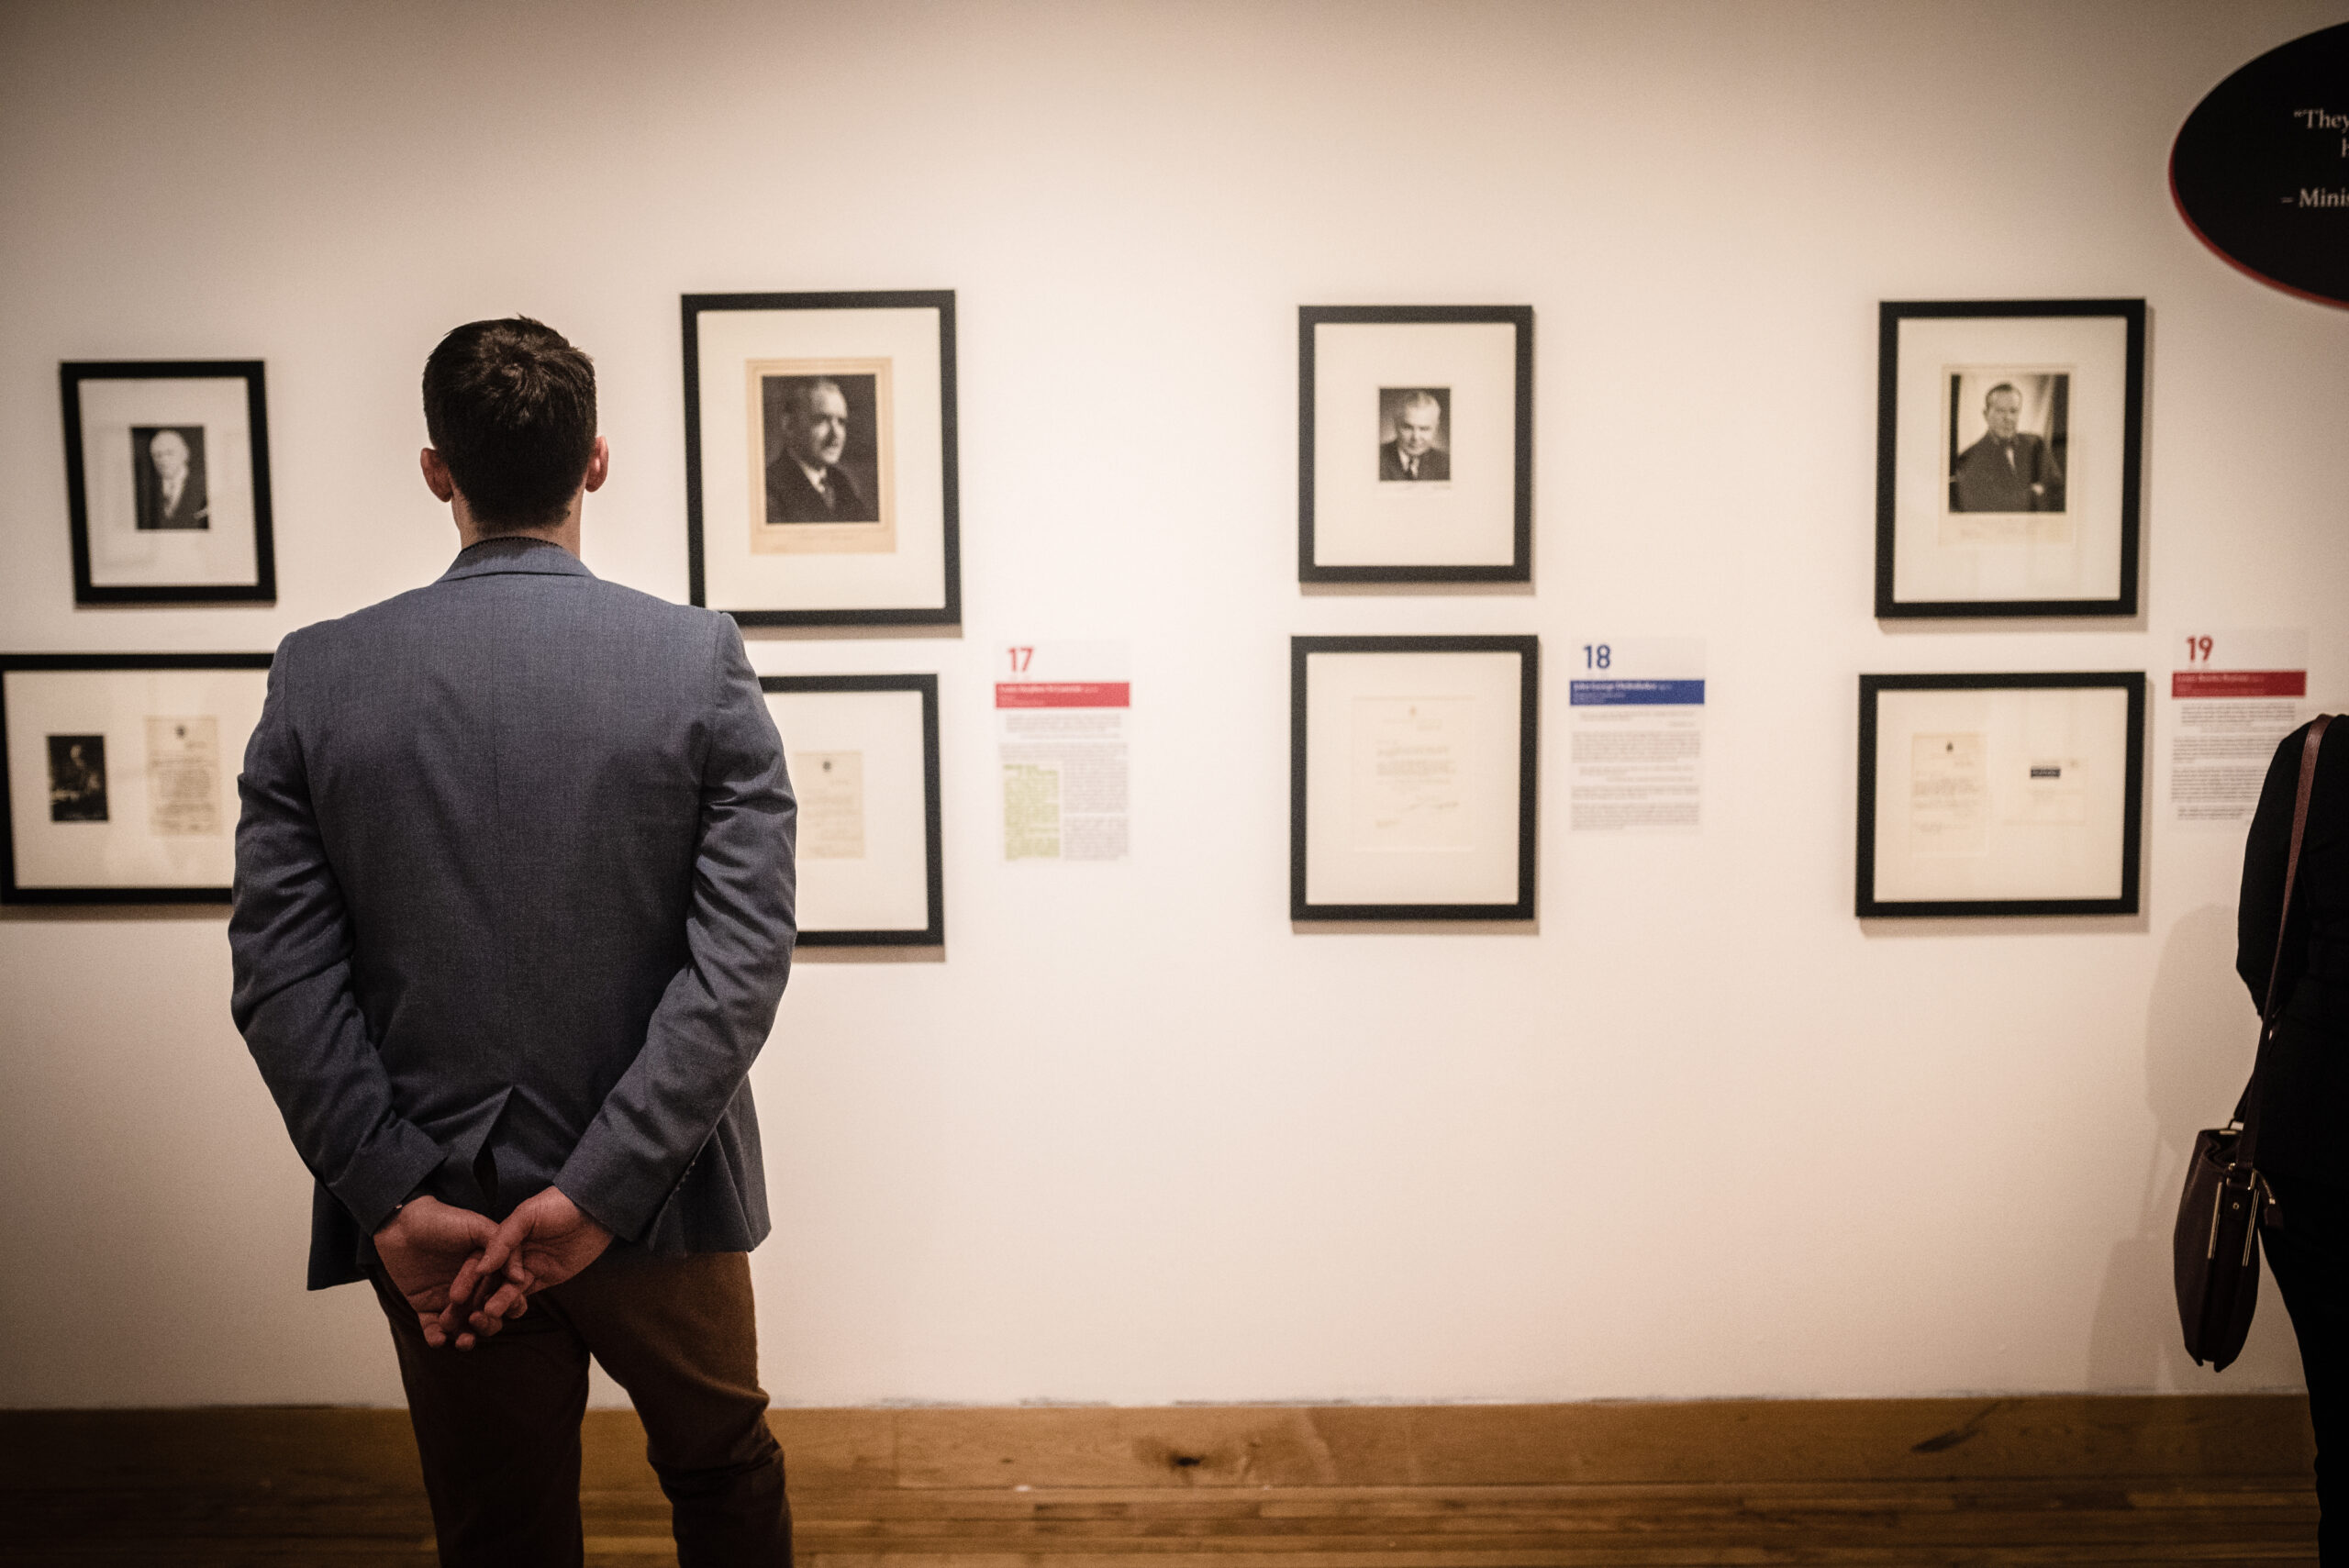 A man looks at artwork on a white wall.